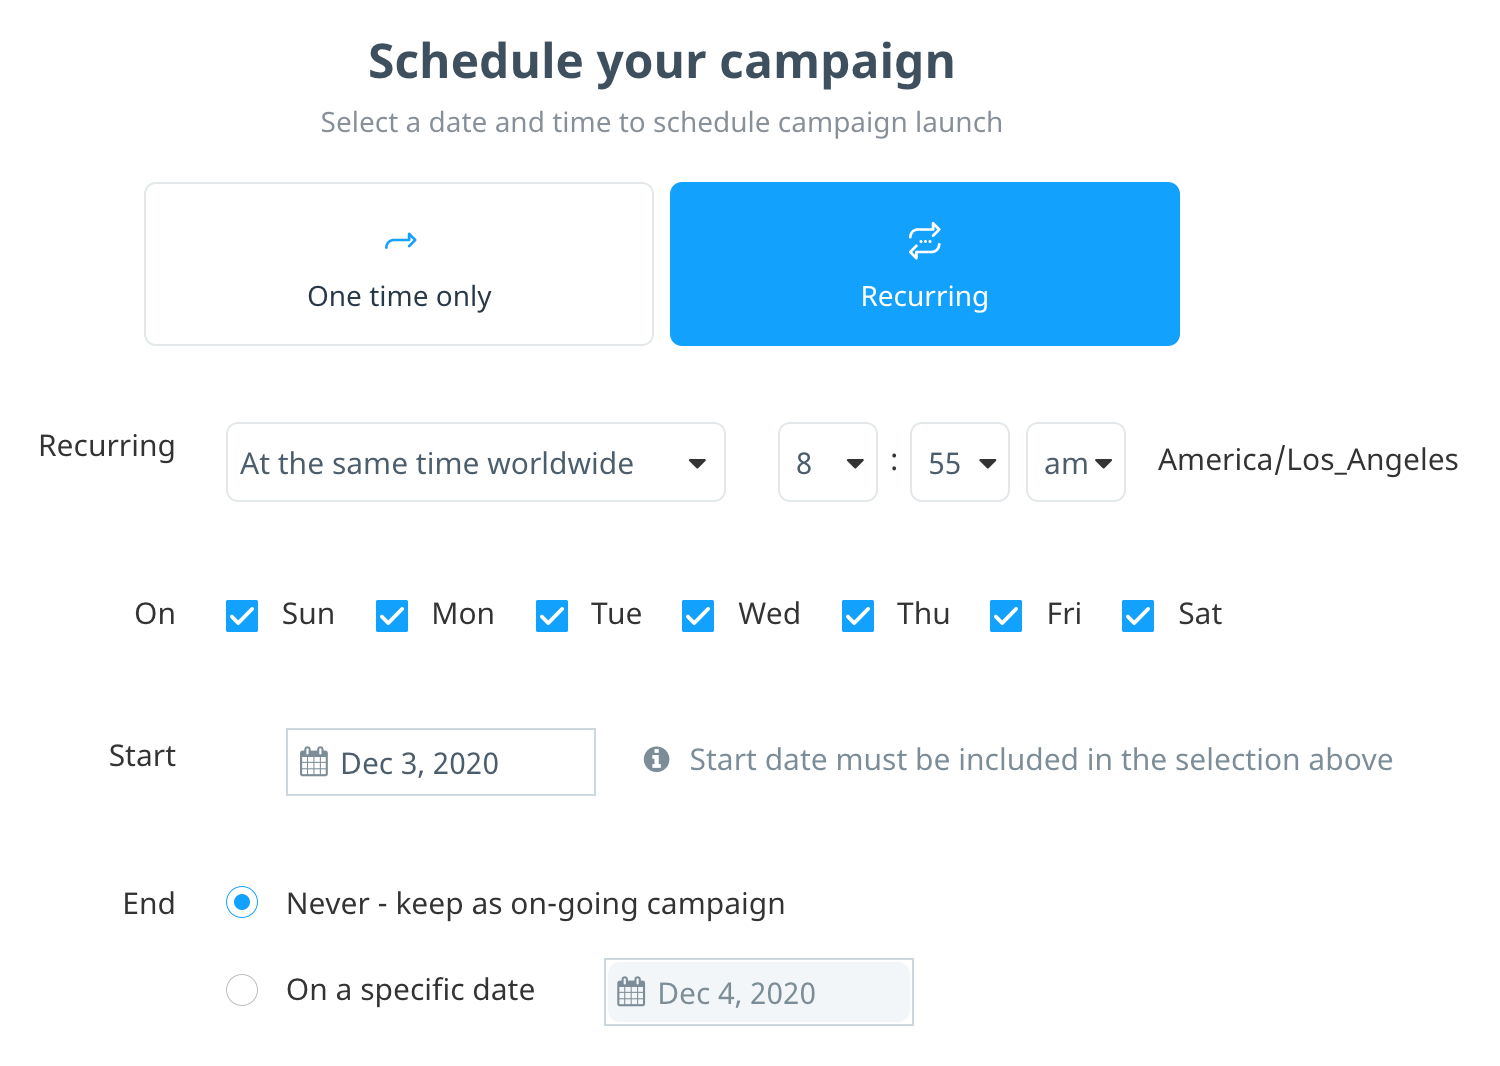 Schedule for a recurring campaign sent daily at the same time worldwide